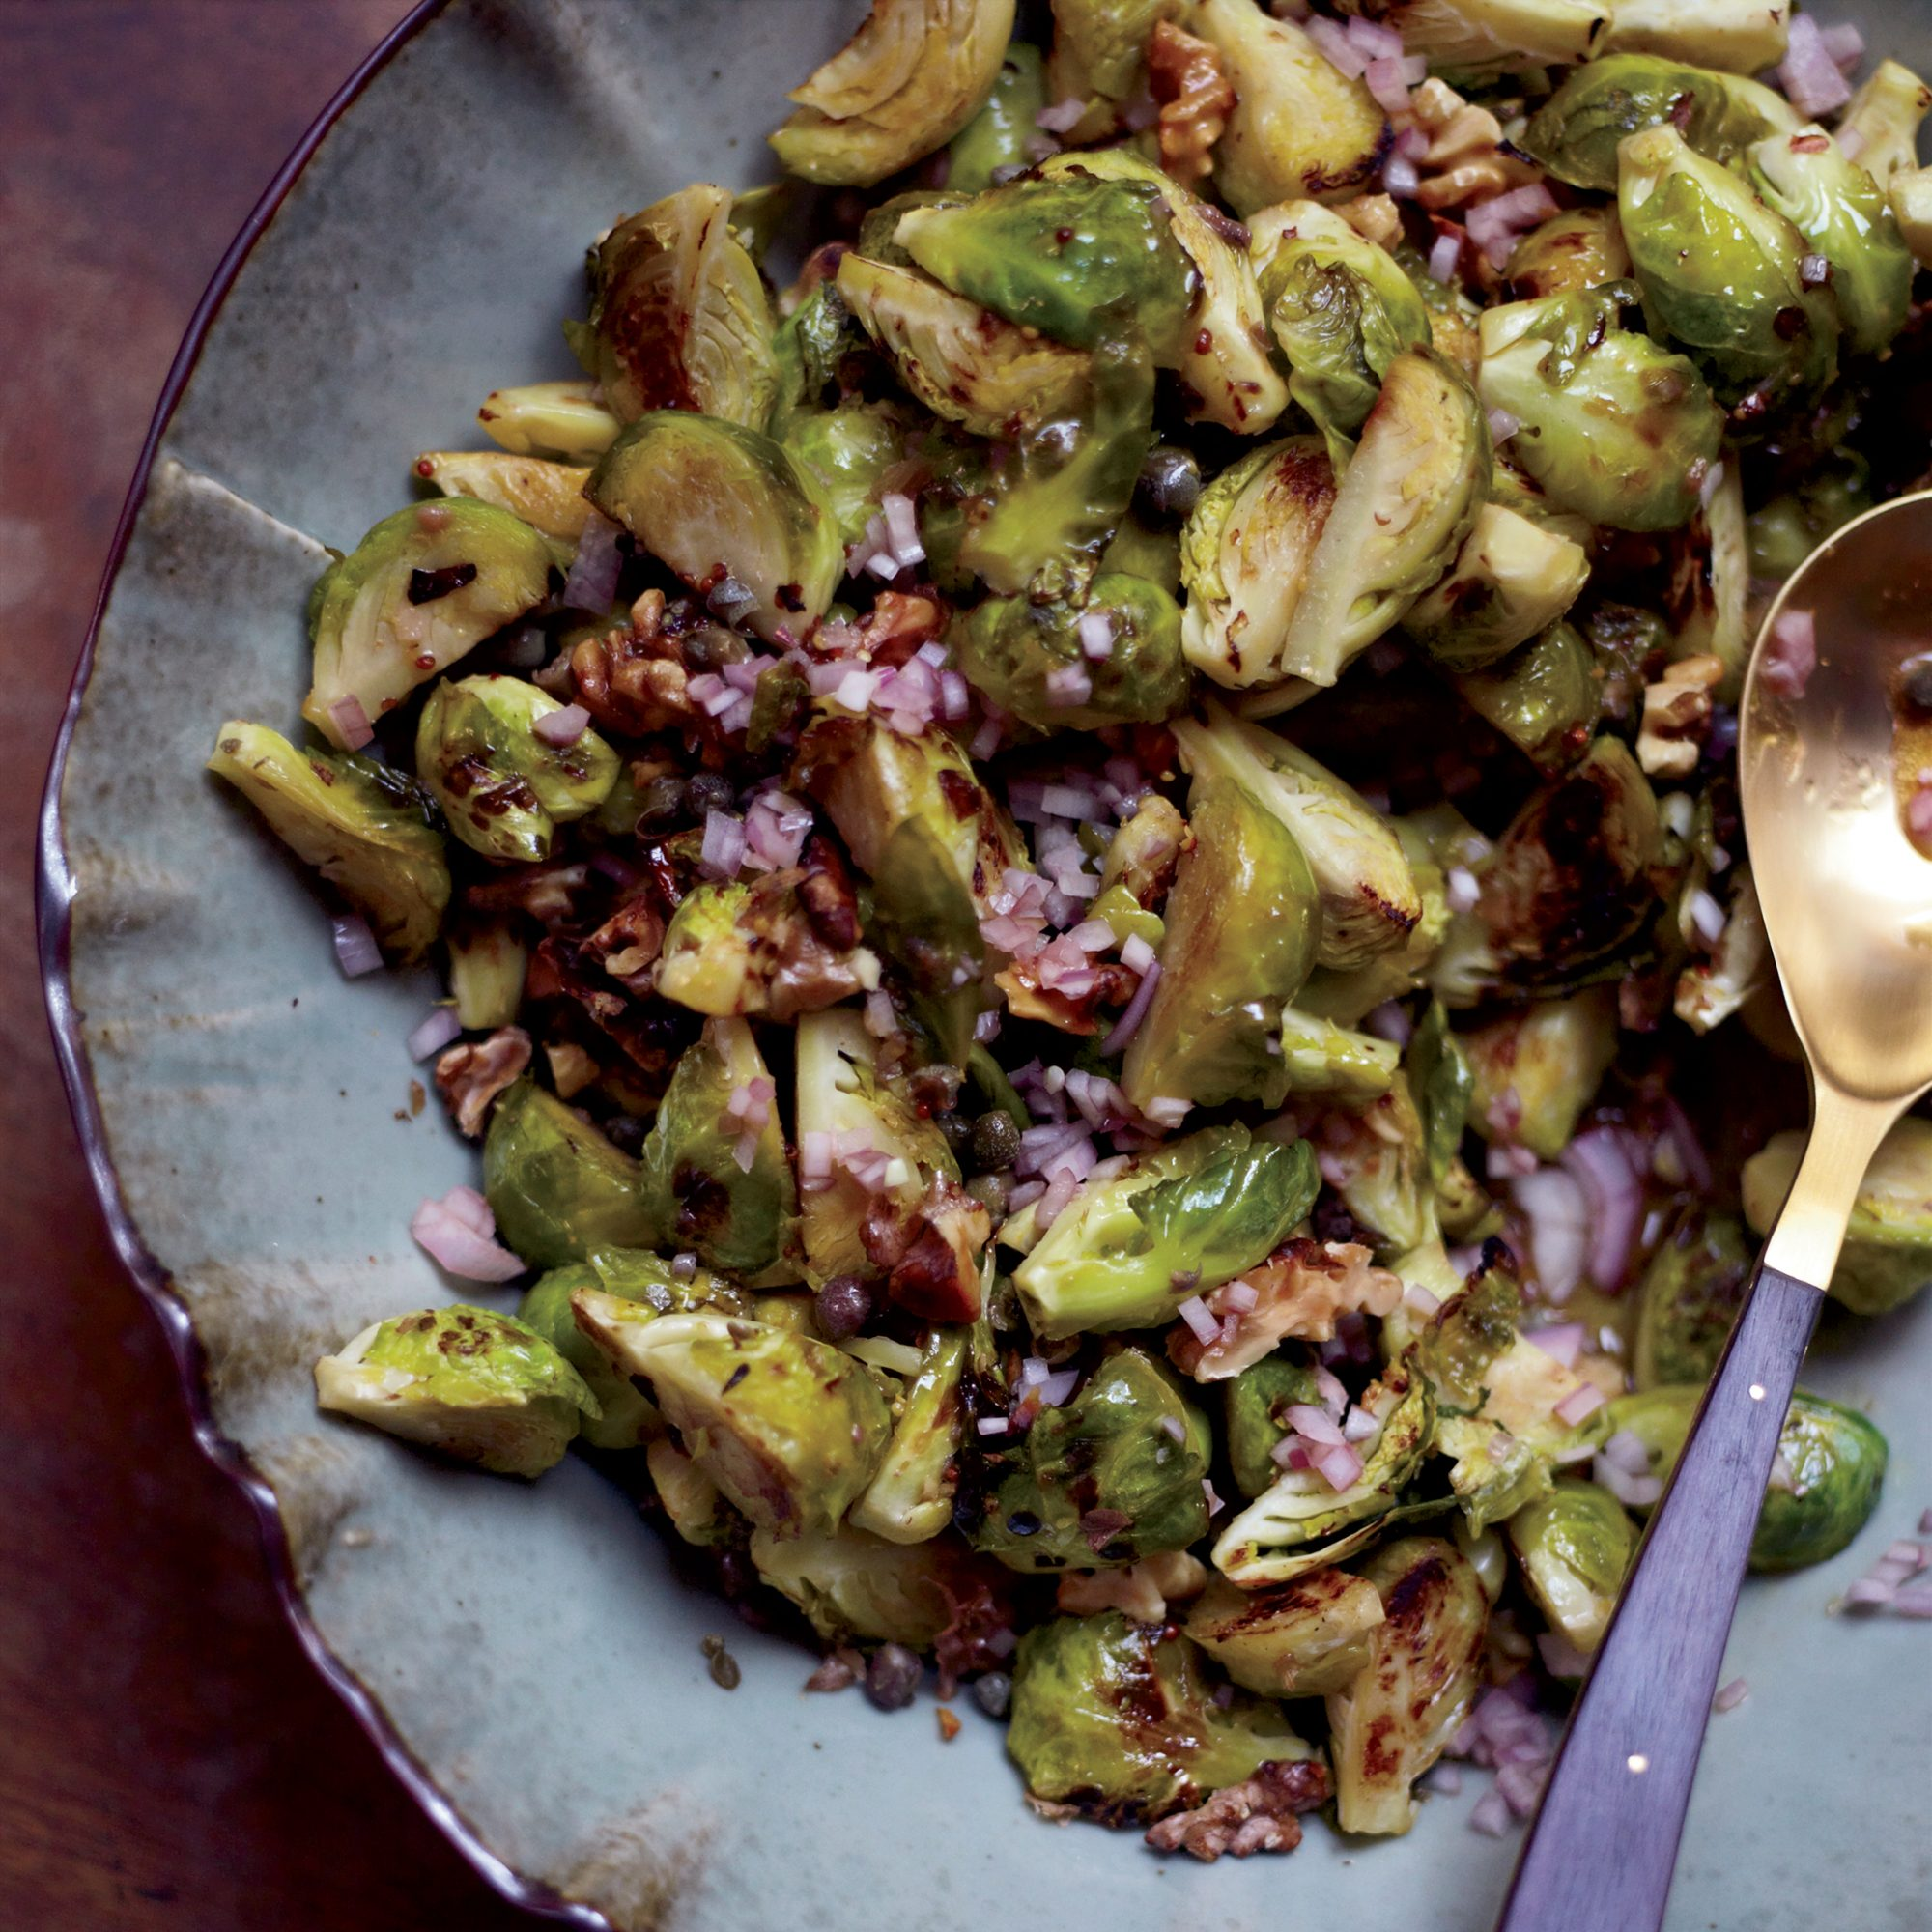 Roasted Brussels Sprouts with Capers, Walnuts and Anchovies